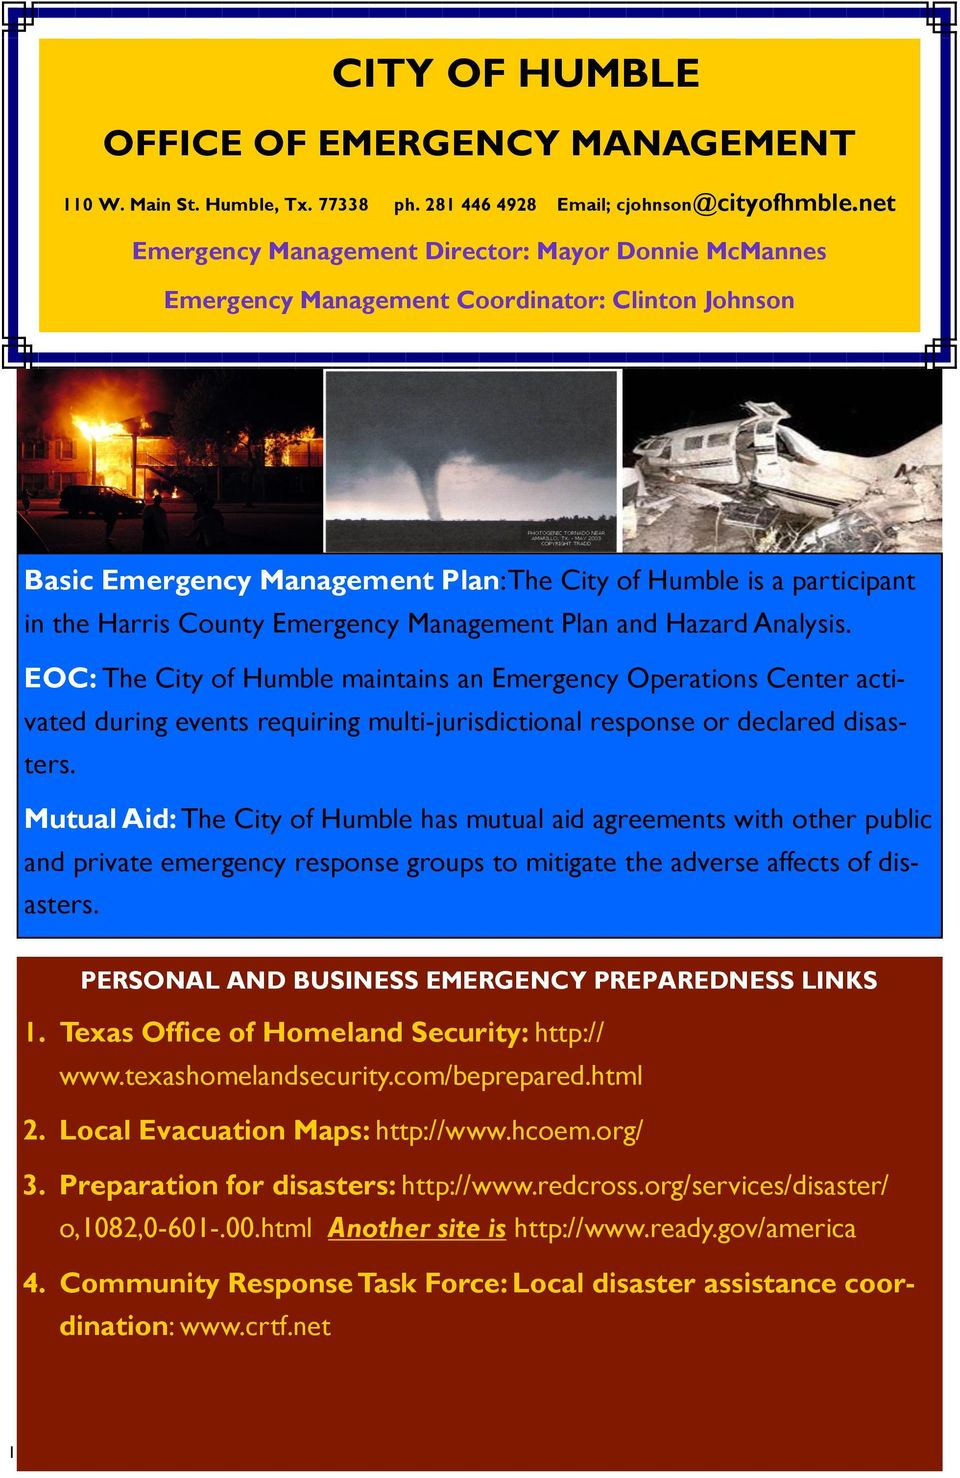 Emergency Management Plan and Hazard Analysis. EOC: The City of Humble maintains an Emergency Operations Center activated during events requiring multi-jurisdictional response or declared disasters.